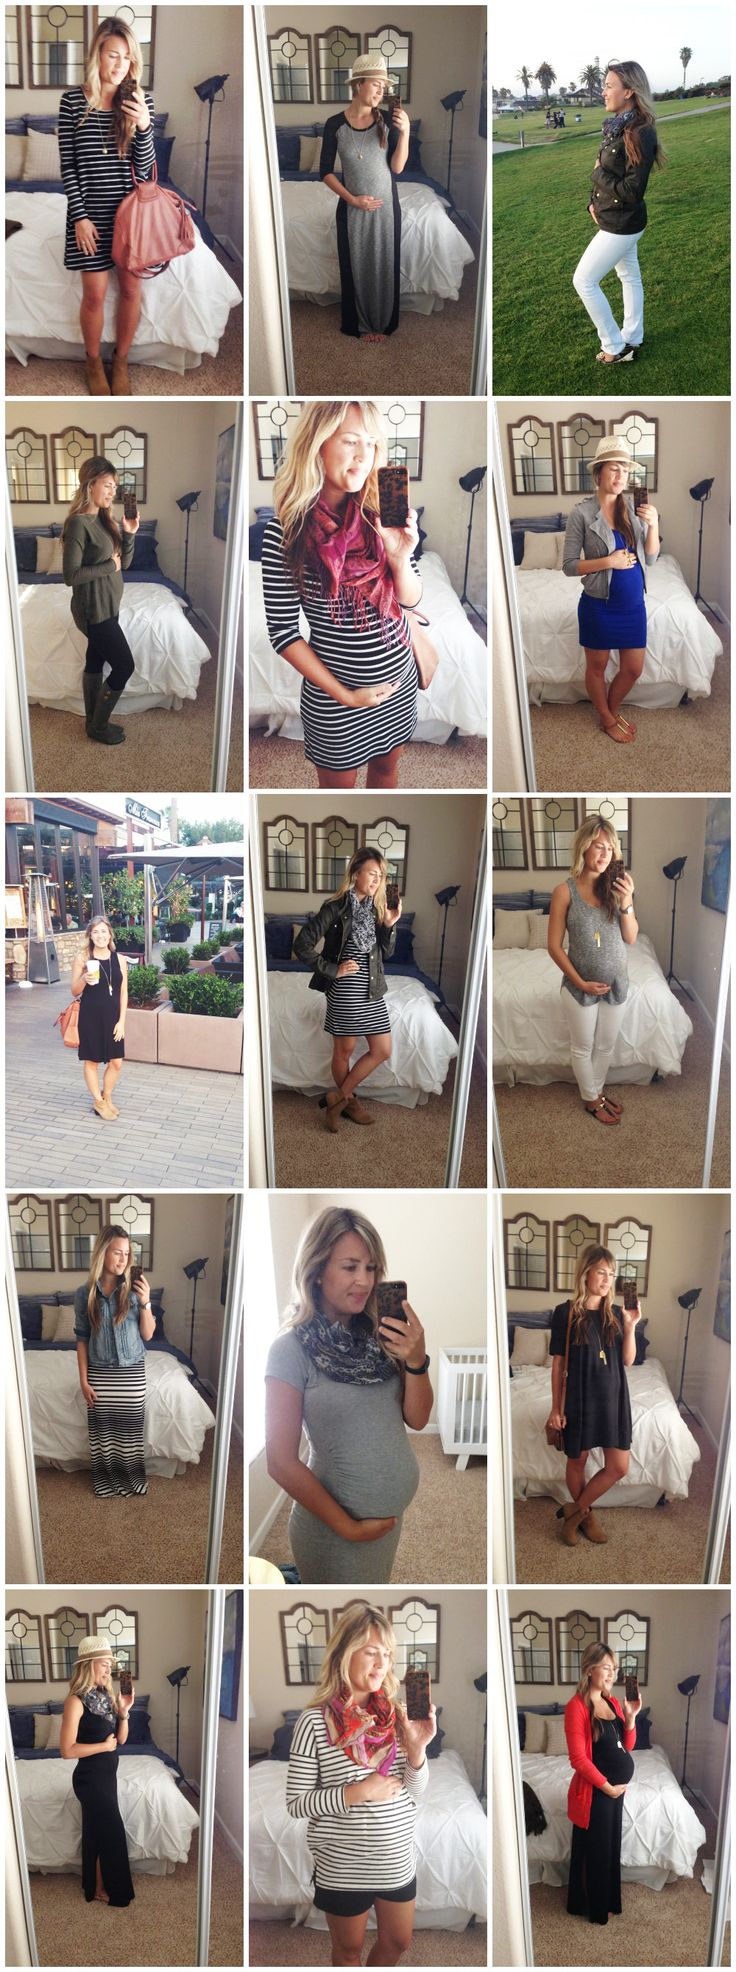 Capsule Wardrobe in Action #maternityfashion #babybump - kinda want to put this into action withOUT a bump, ha ha! Pregnancy fashion is so fun!